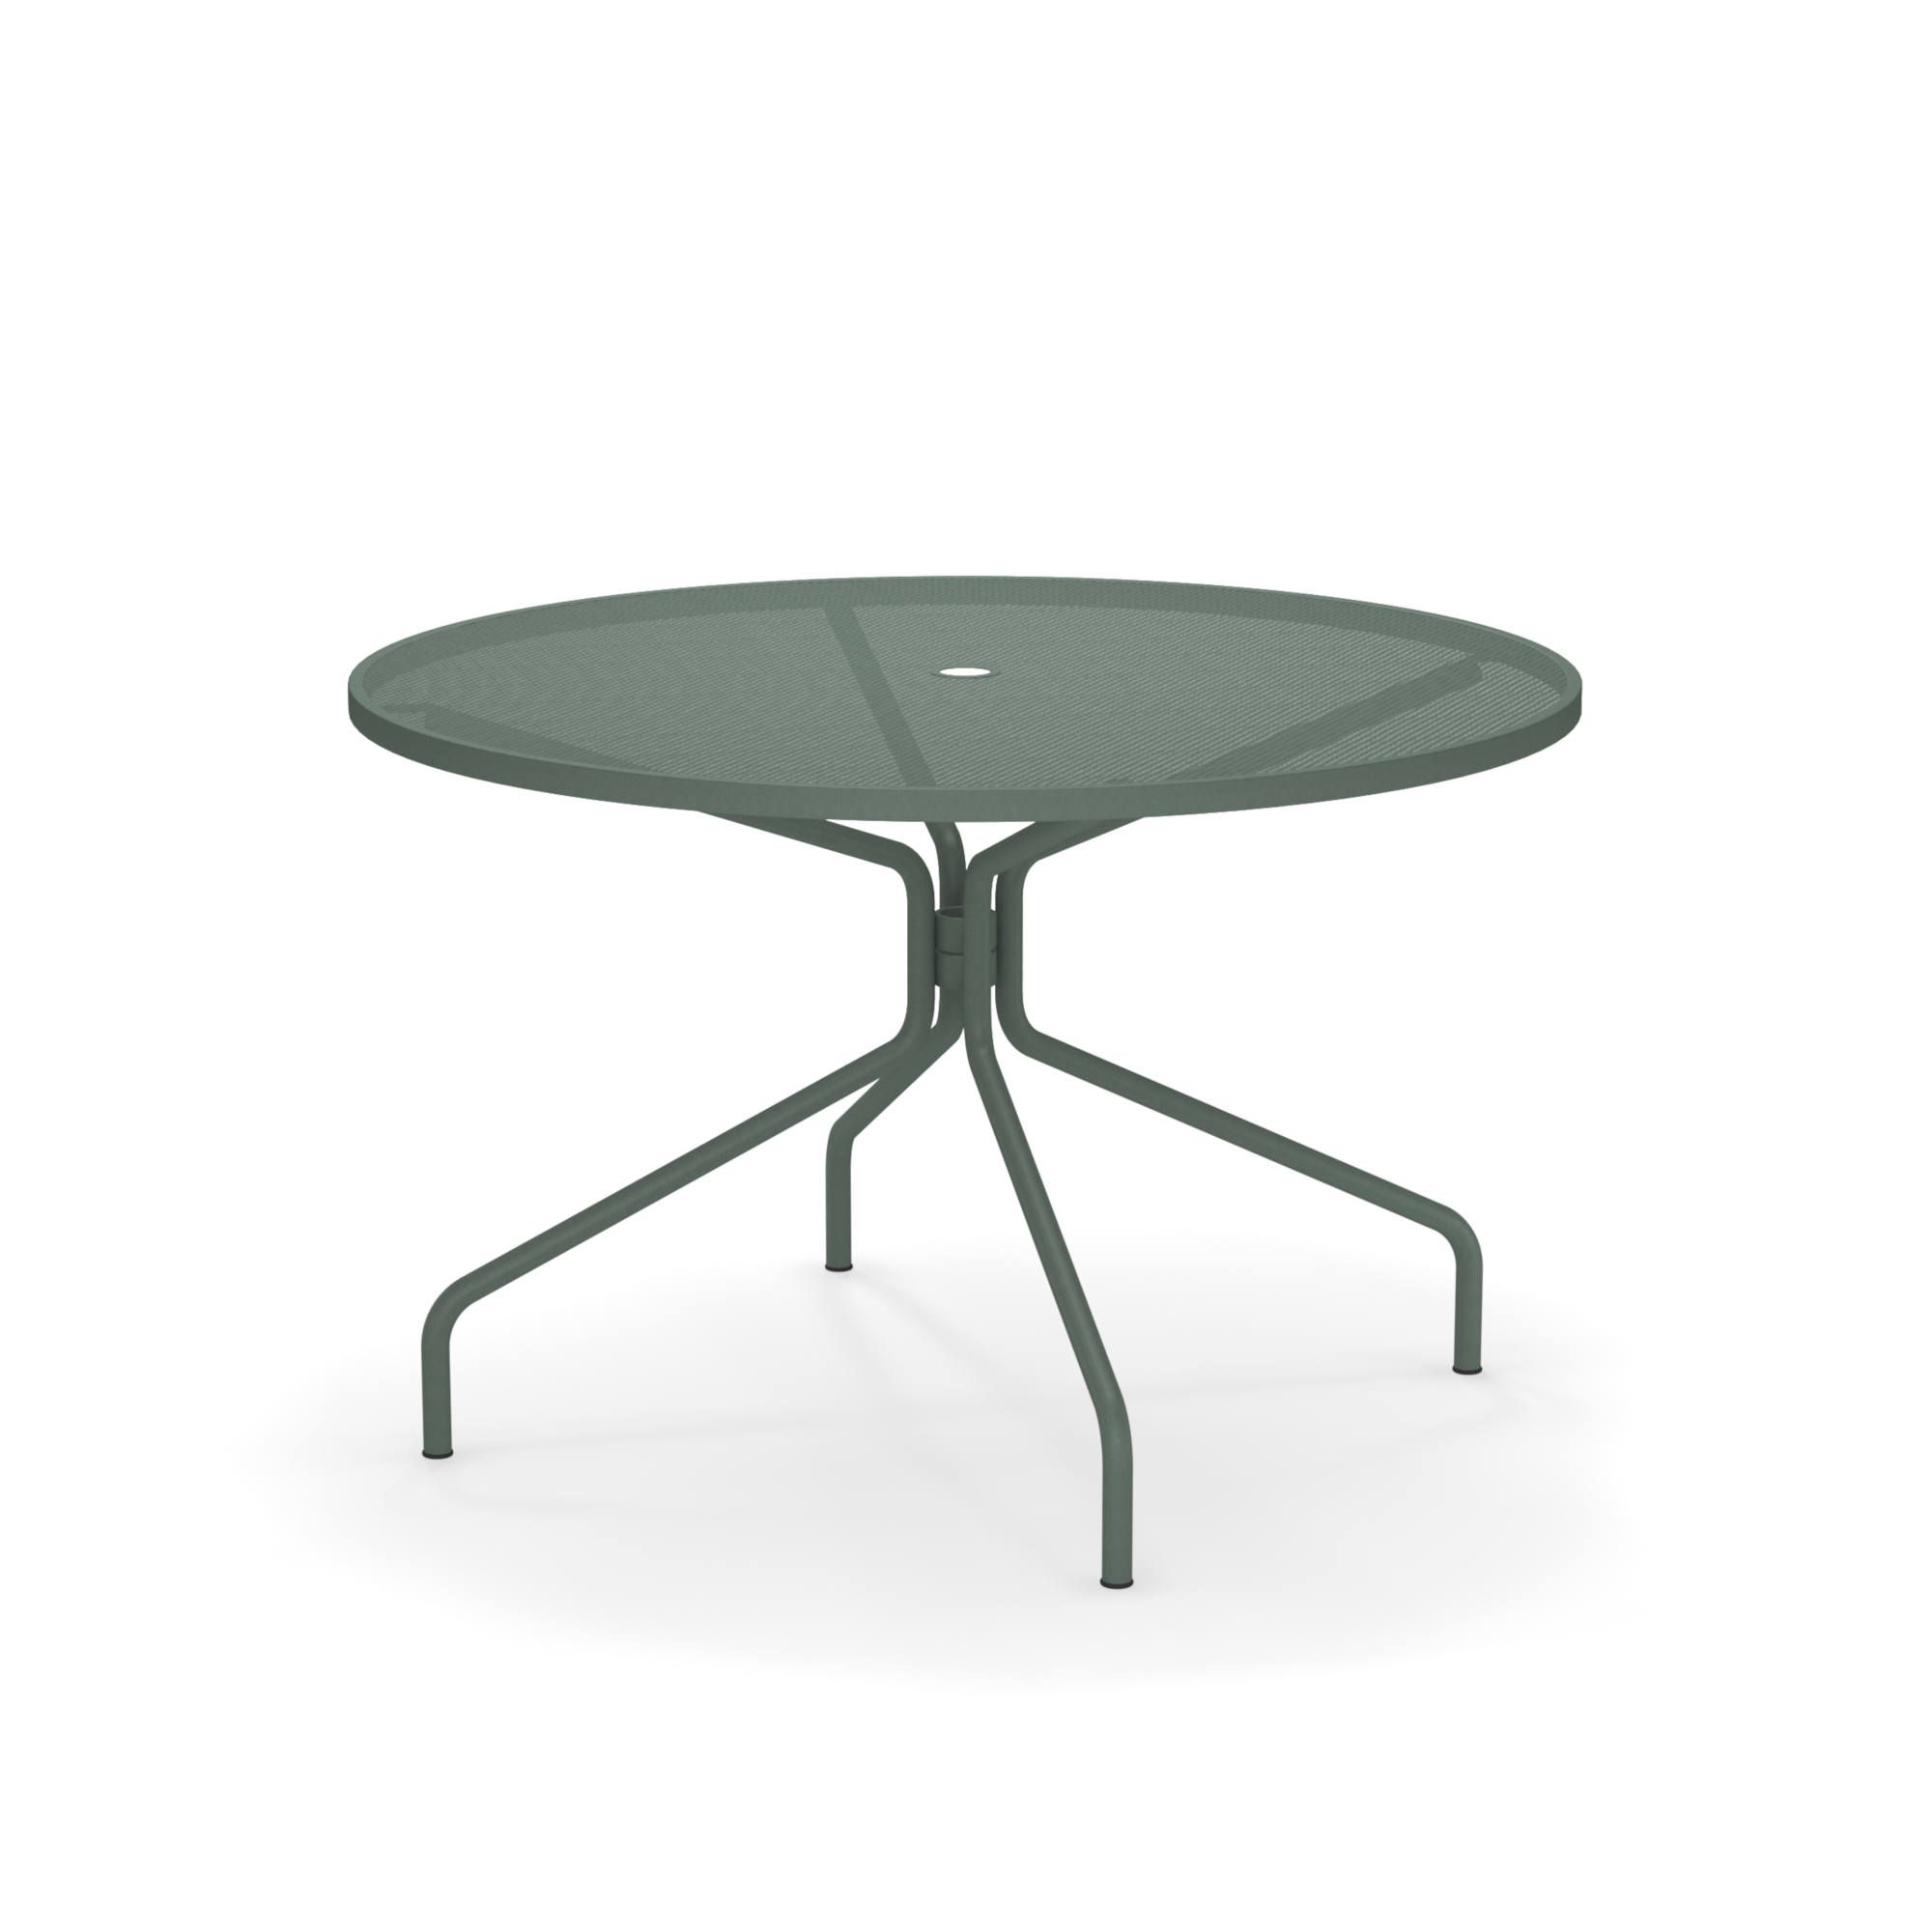 emuamericas, llc 805-75 table, outdoor